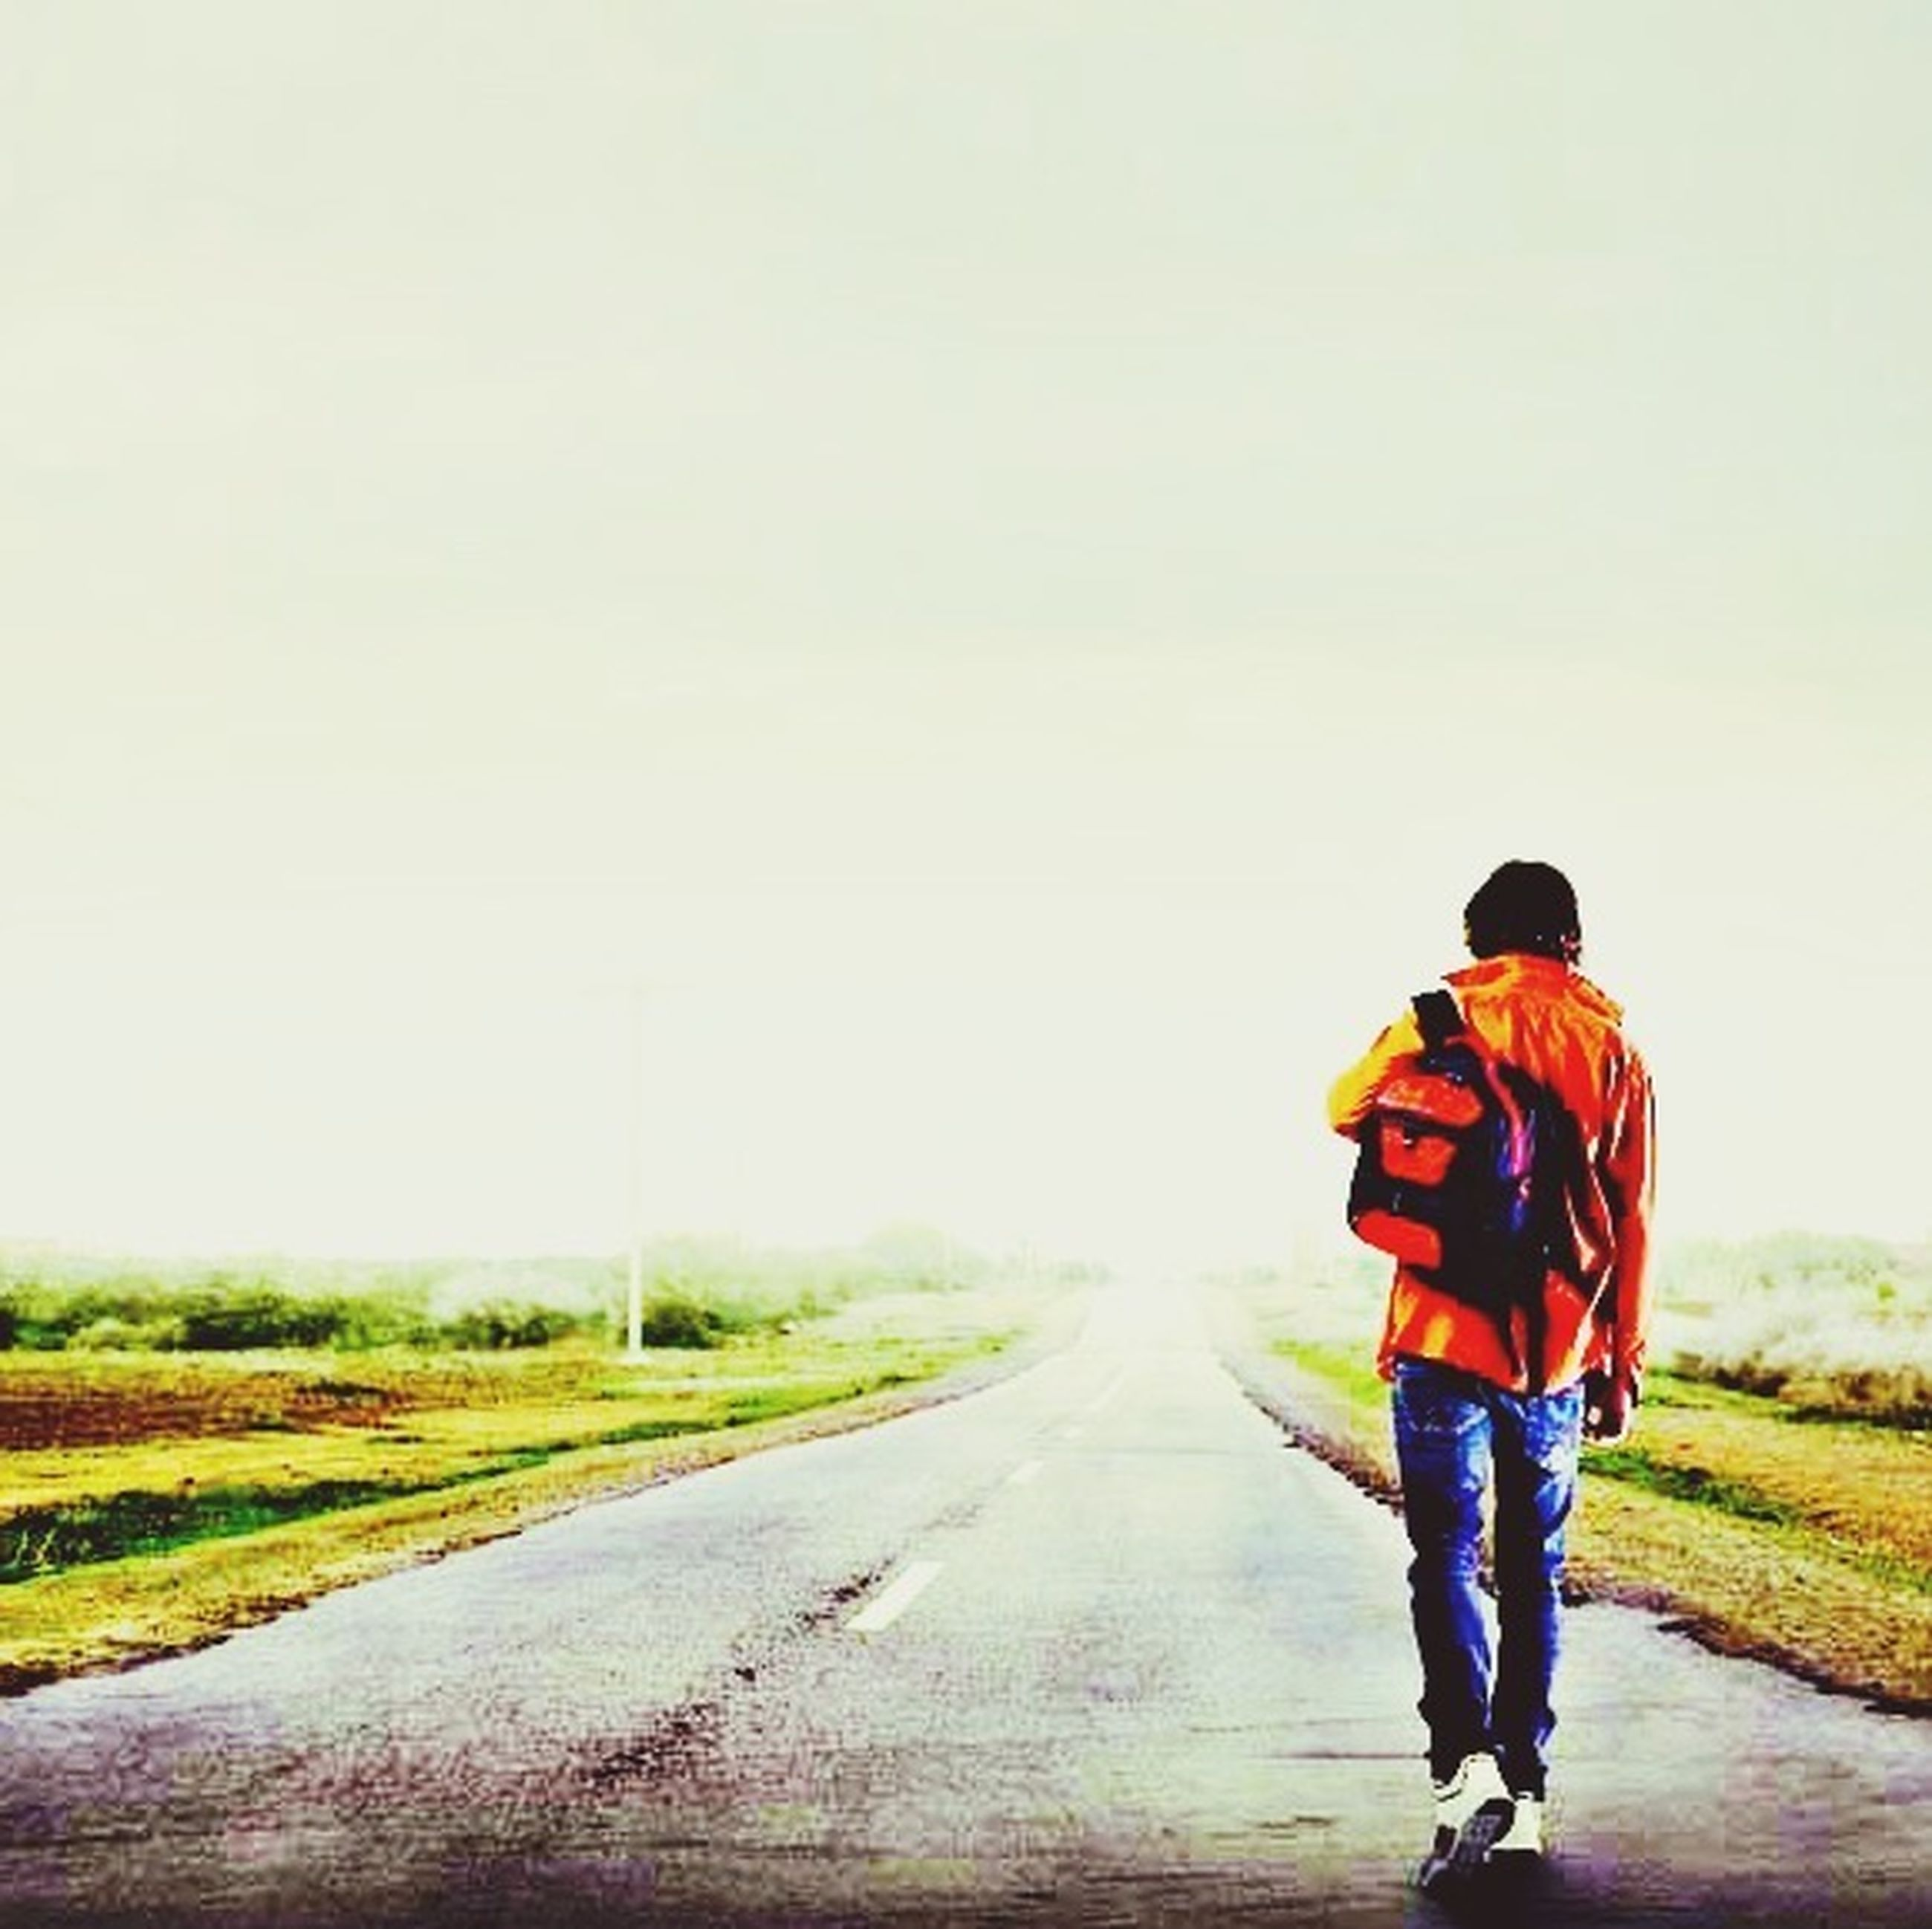 rear view, full length, clear sky, lifestyles, copy space, road, walking, leisure activity, men, the way forward, casual clothing, standing, transportation, country road, on the move, field, landscape, person